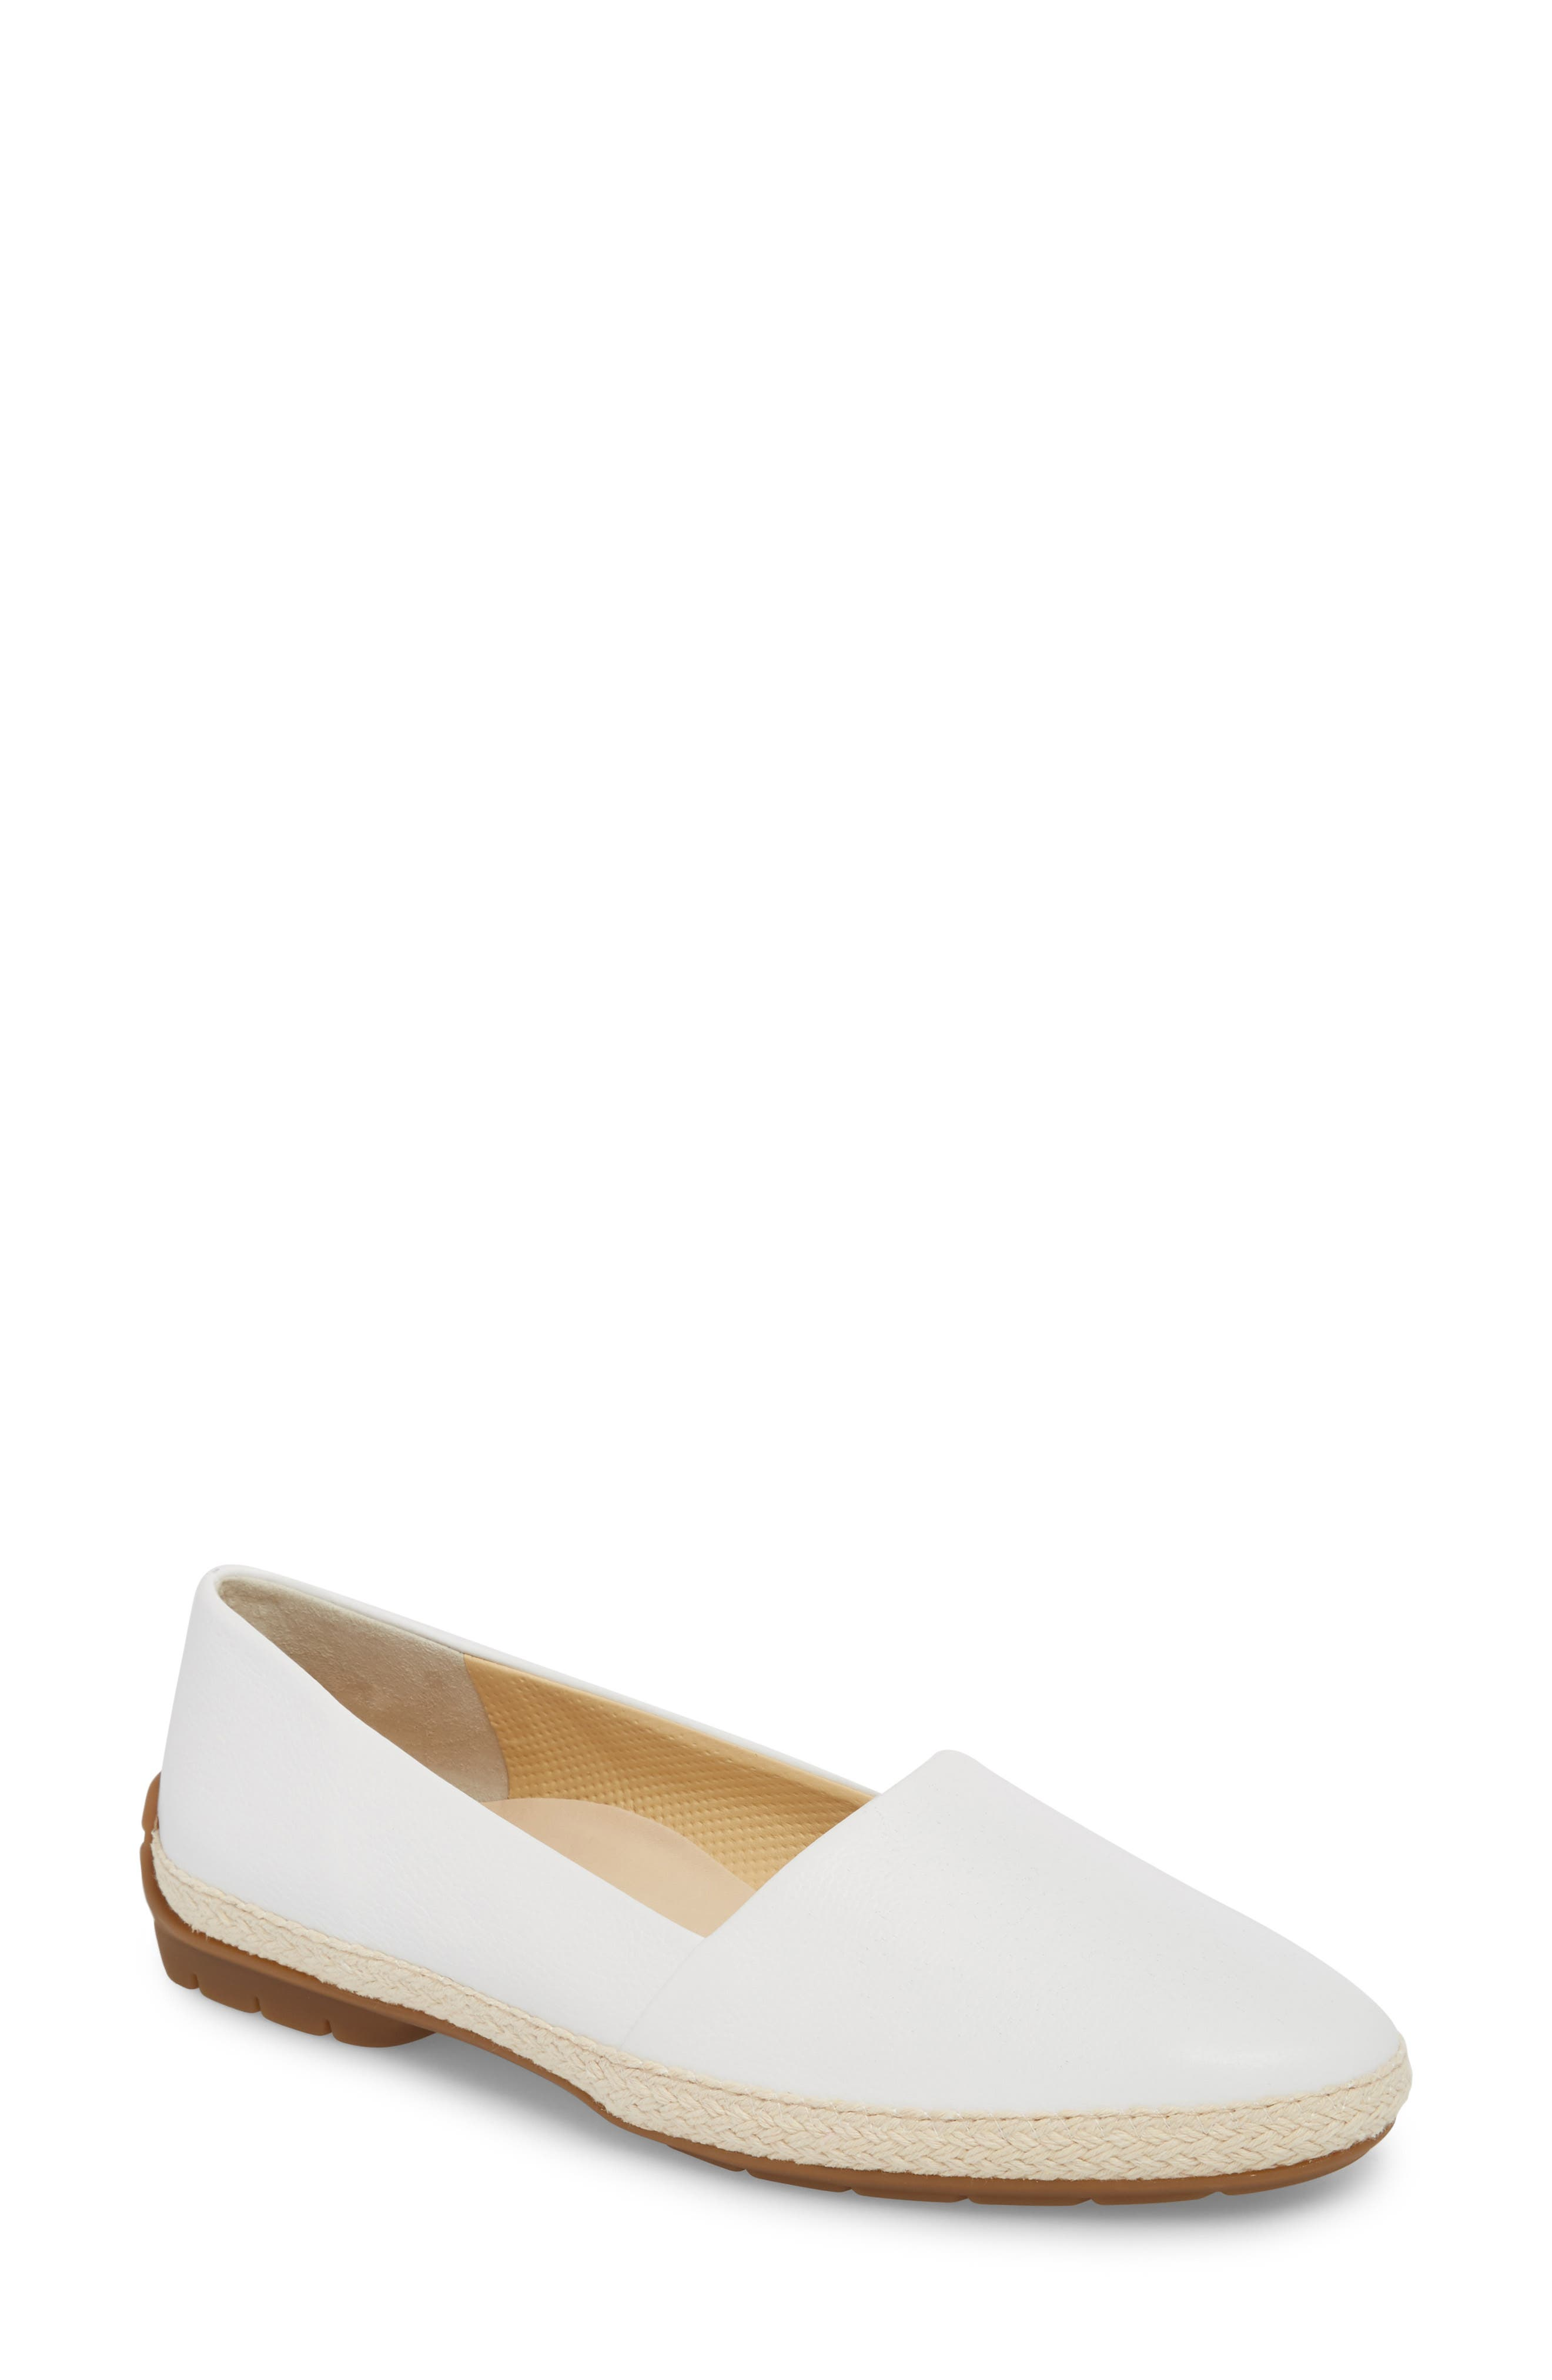 Roxy Espadrille,                         Main,                         color, White Leather